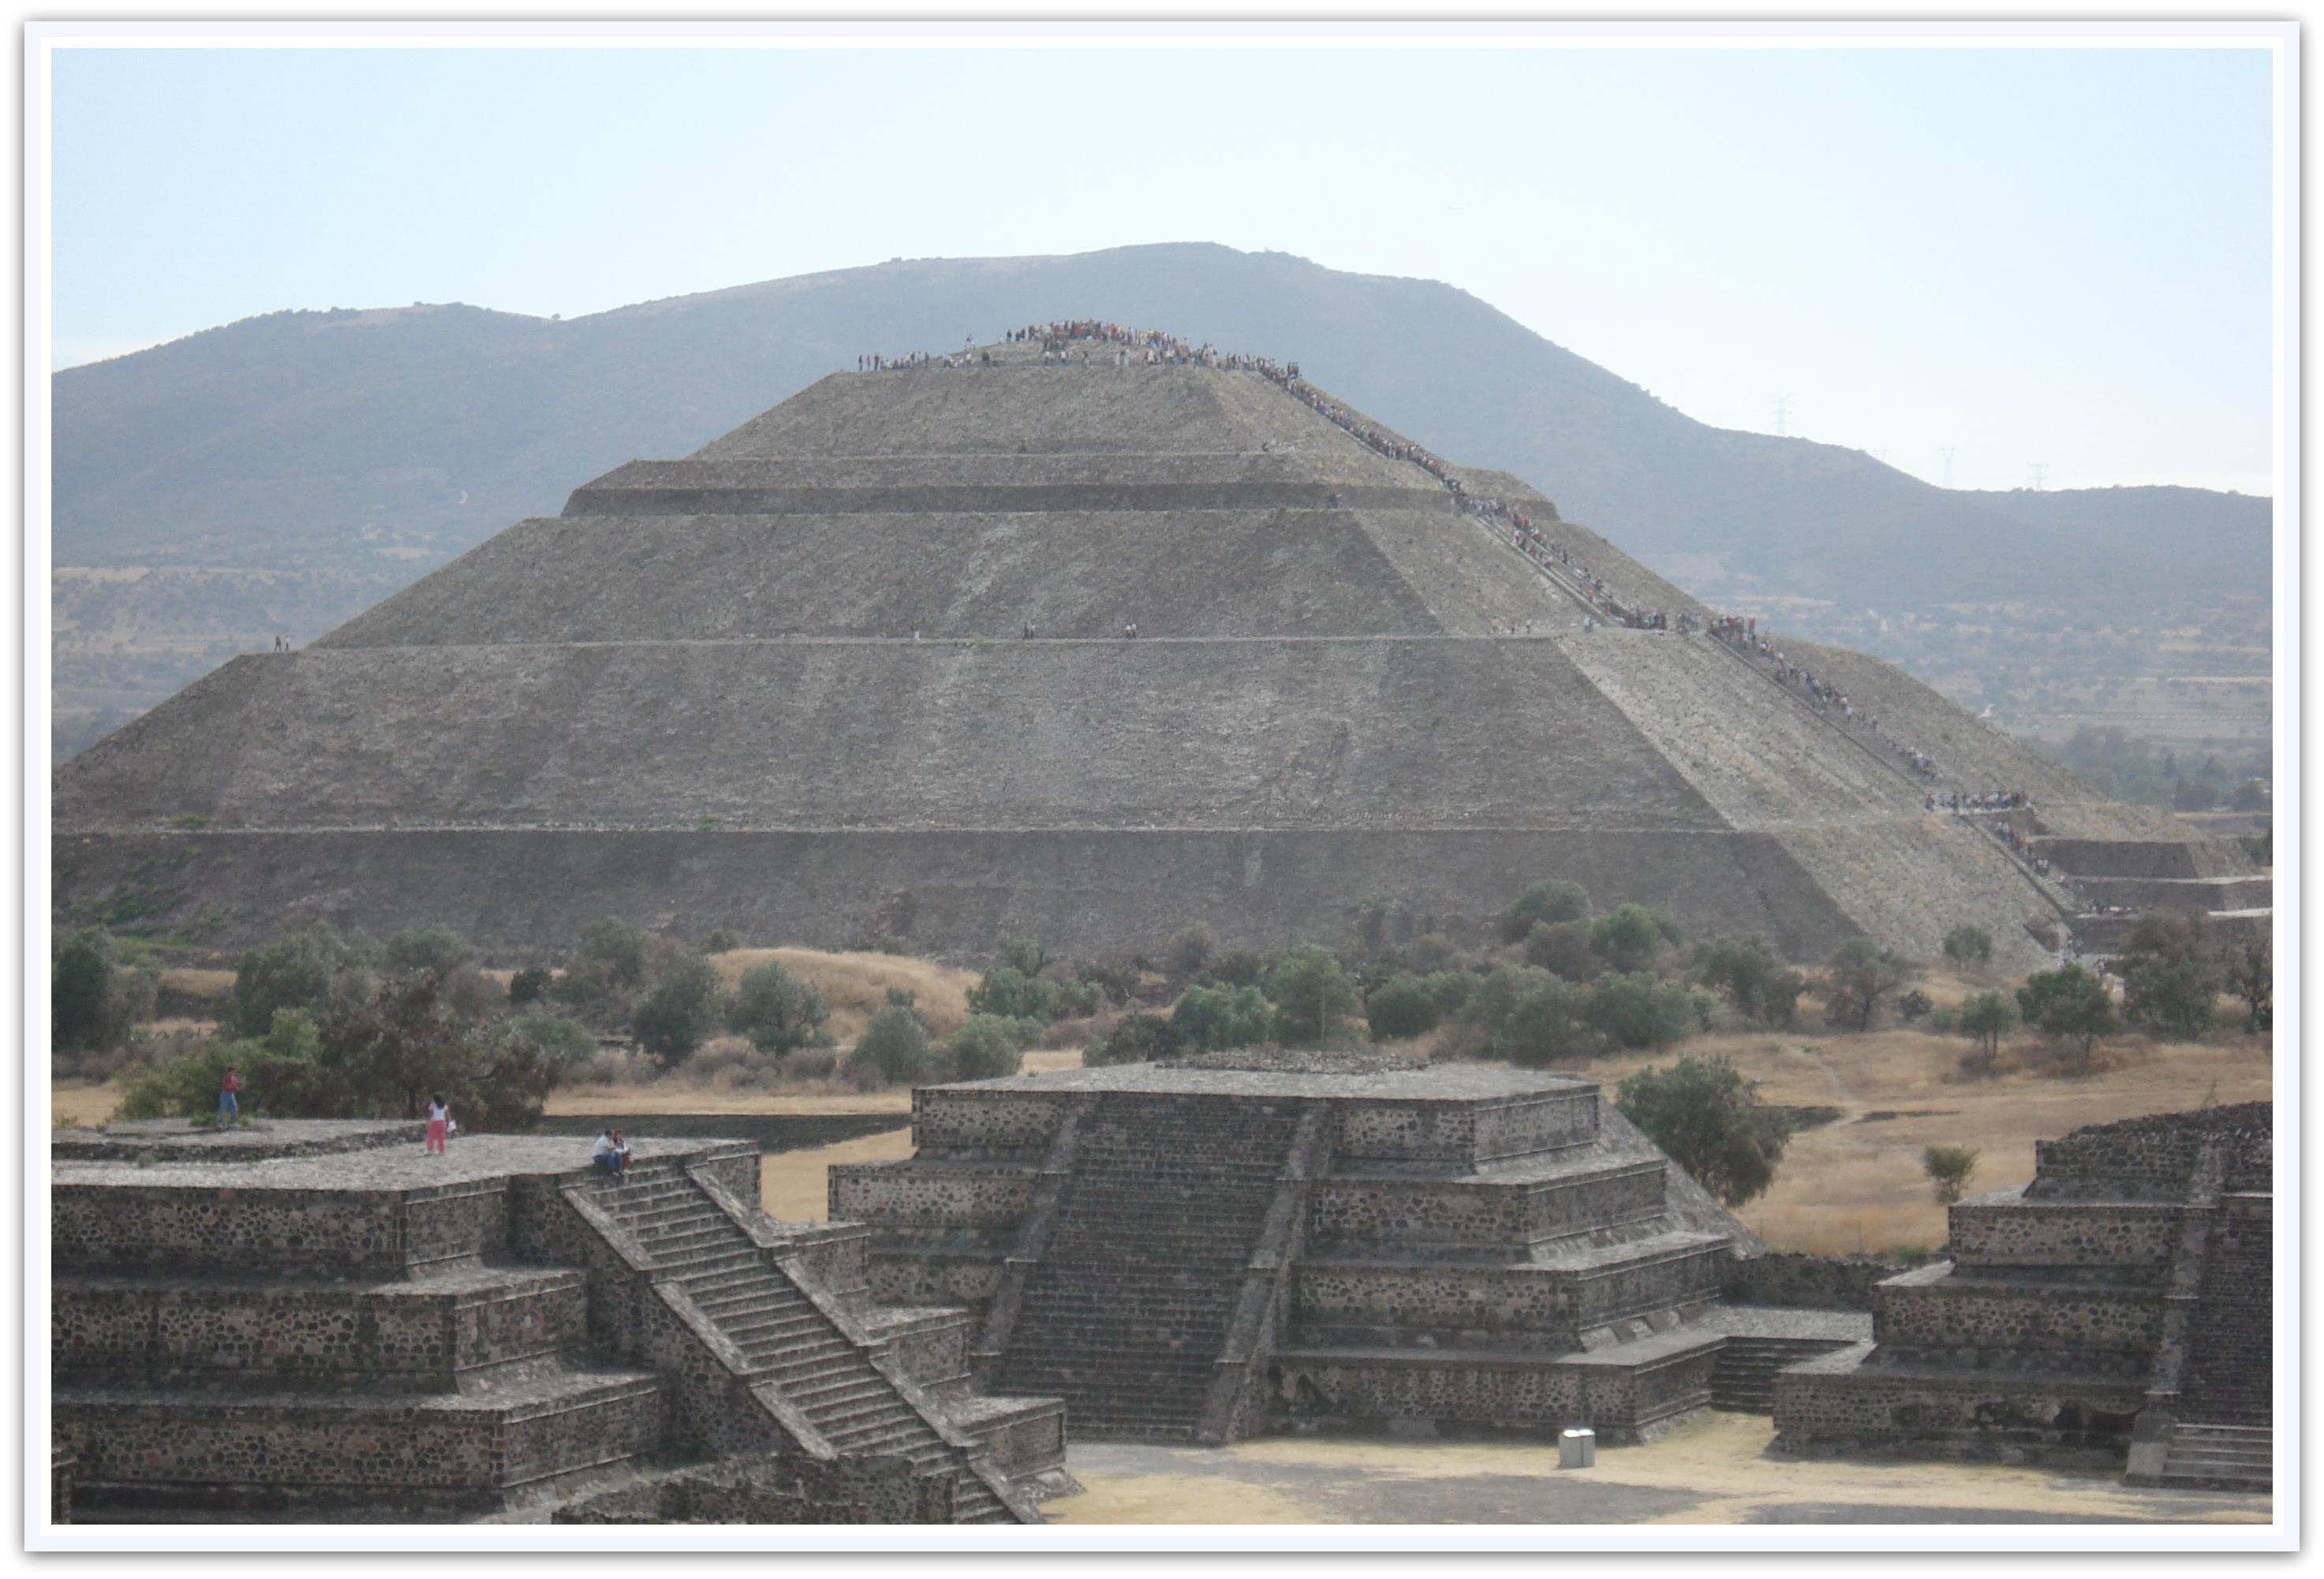 Maya Pyramiden von Teotihuacan in Mexico City